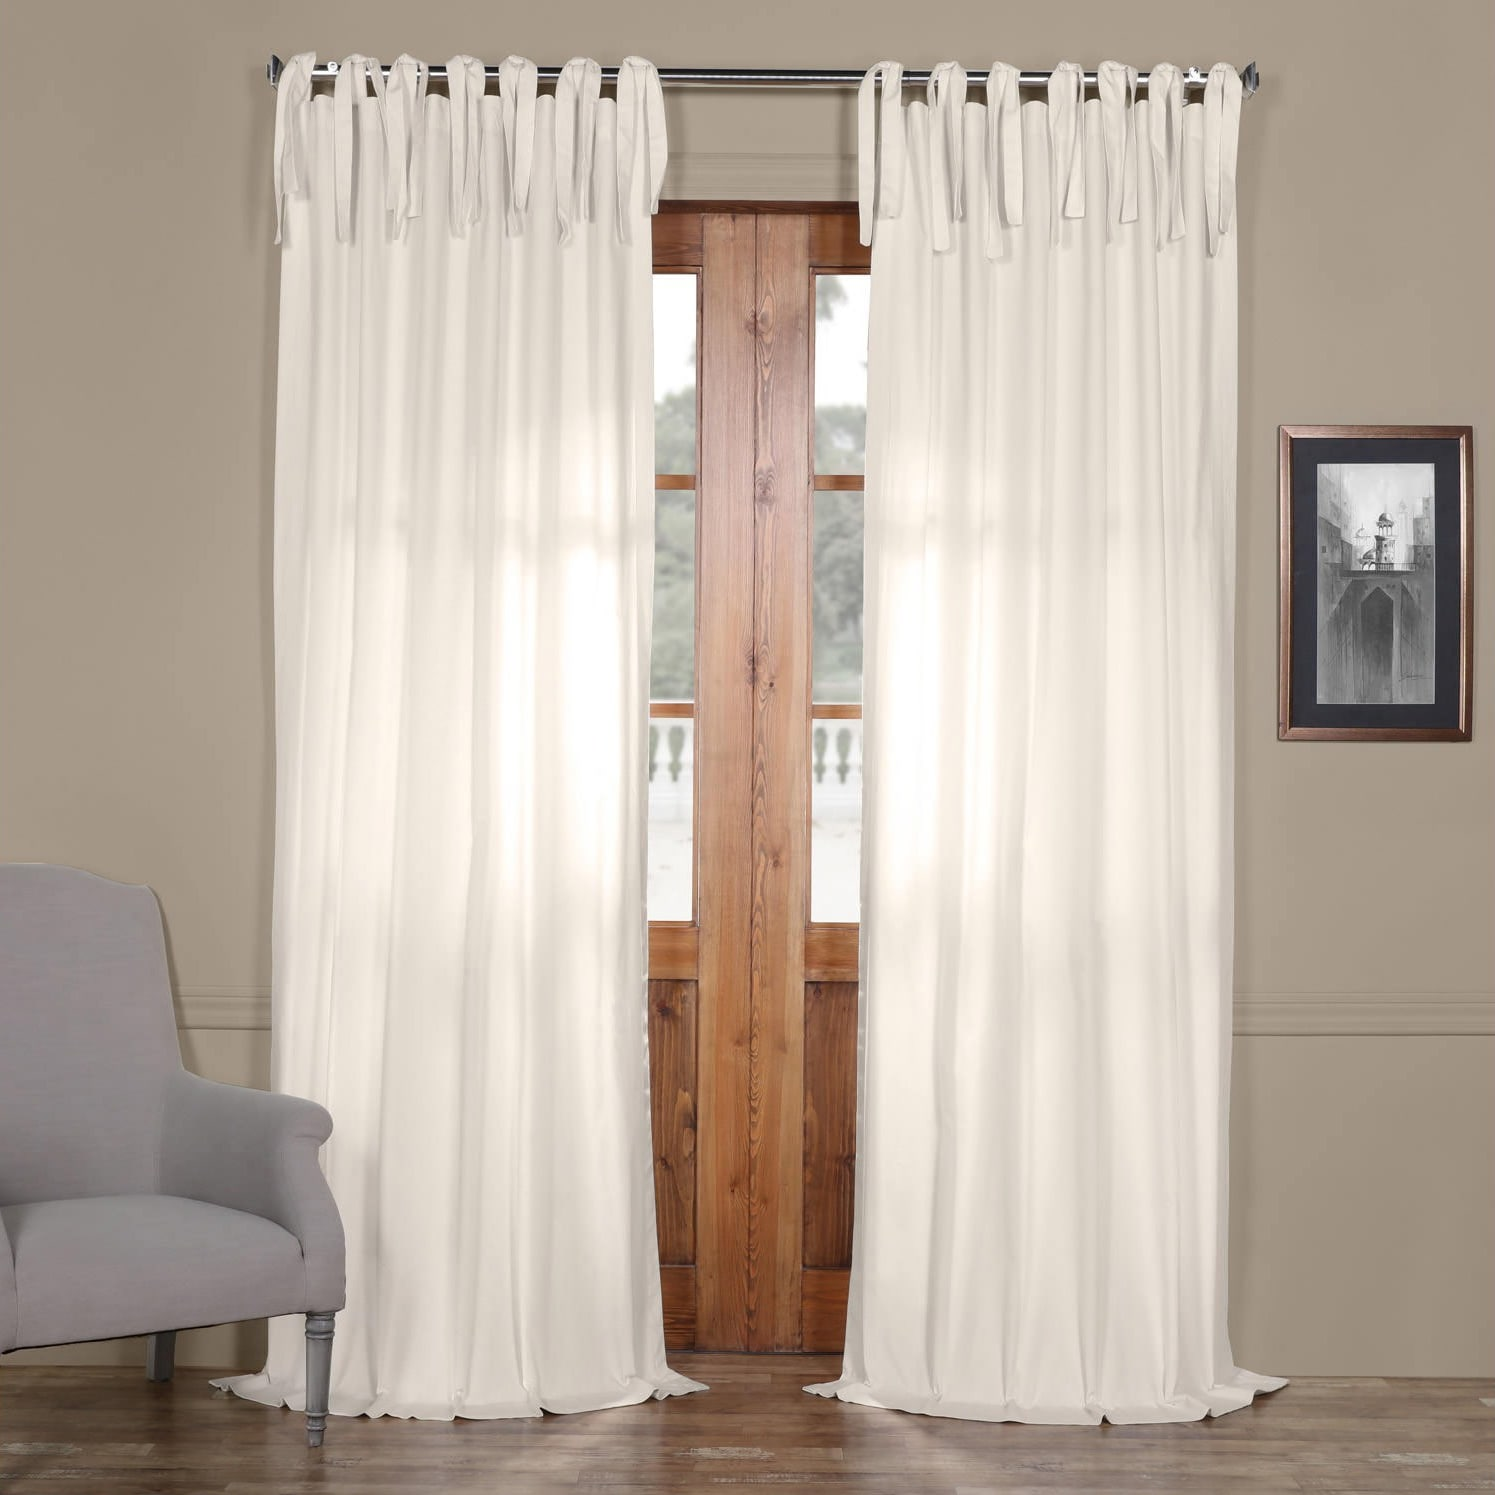 kitchen drapes l amazon tie curtain gauze linen sheer com white w top x sahara home dp